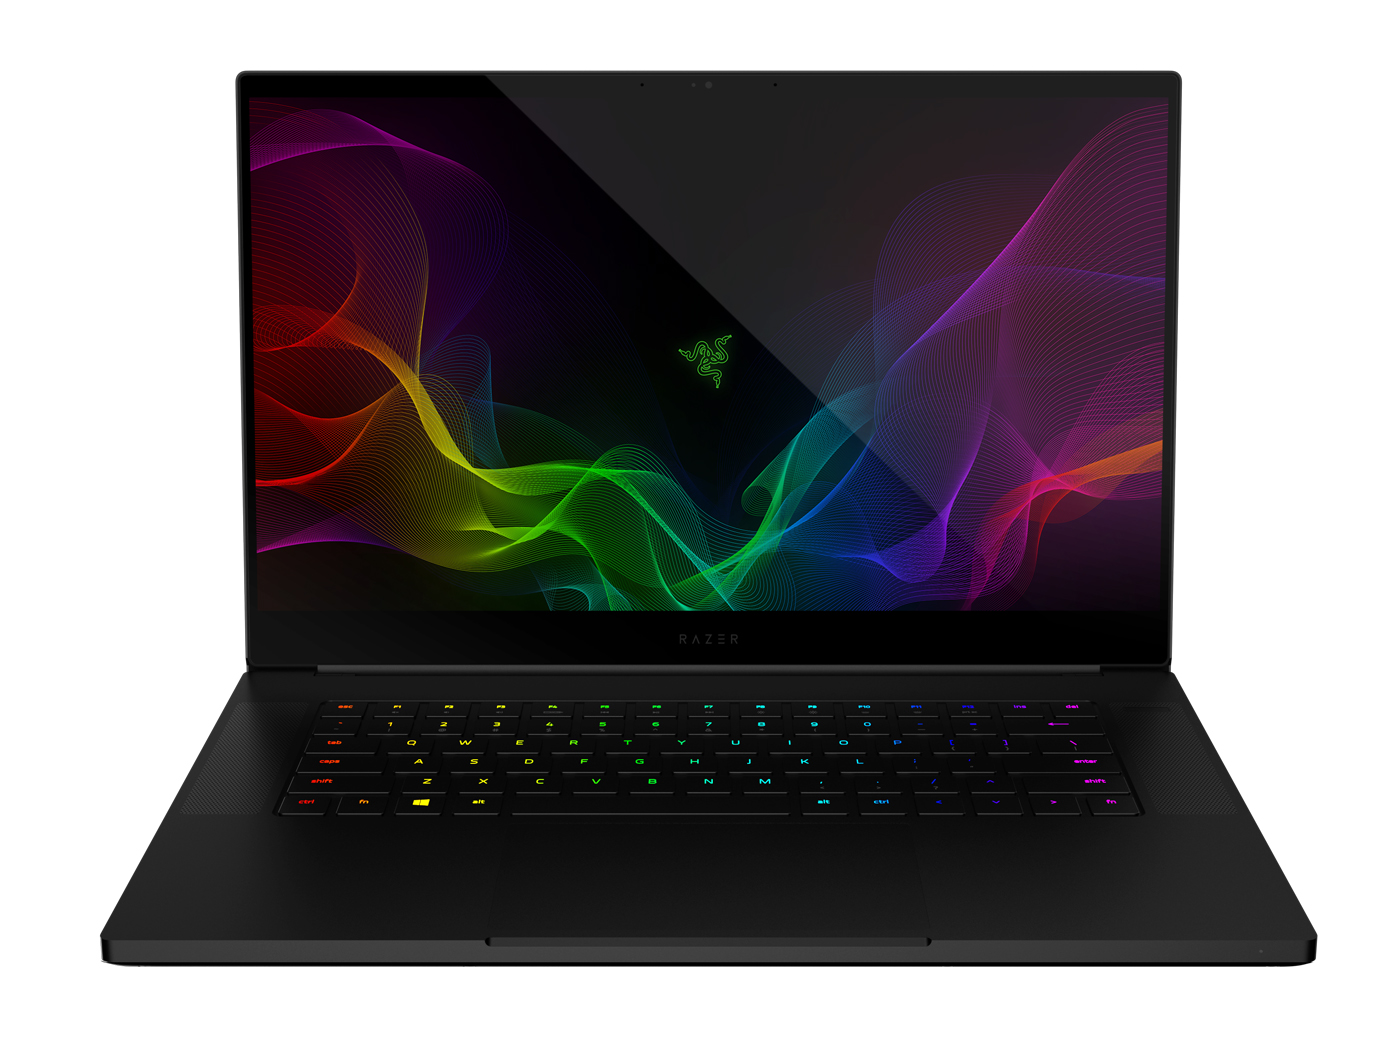 Razer Blade 15 (i7-8750H, GTX 1070 Max-Q, FHD) Laptop Review